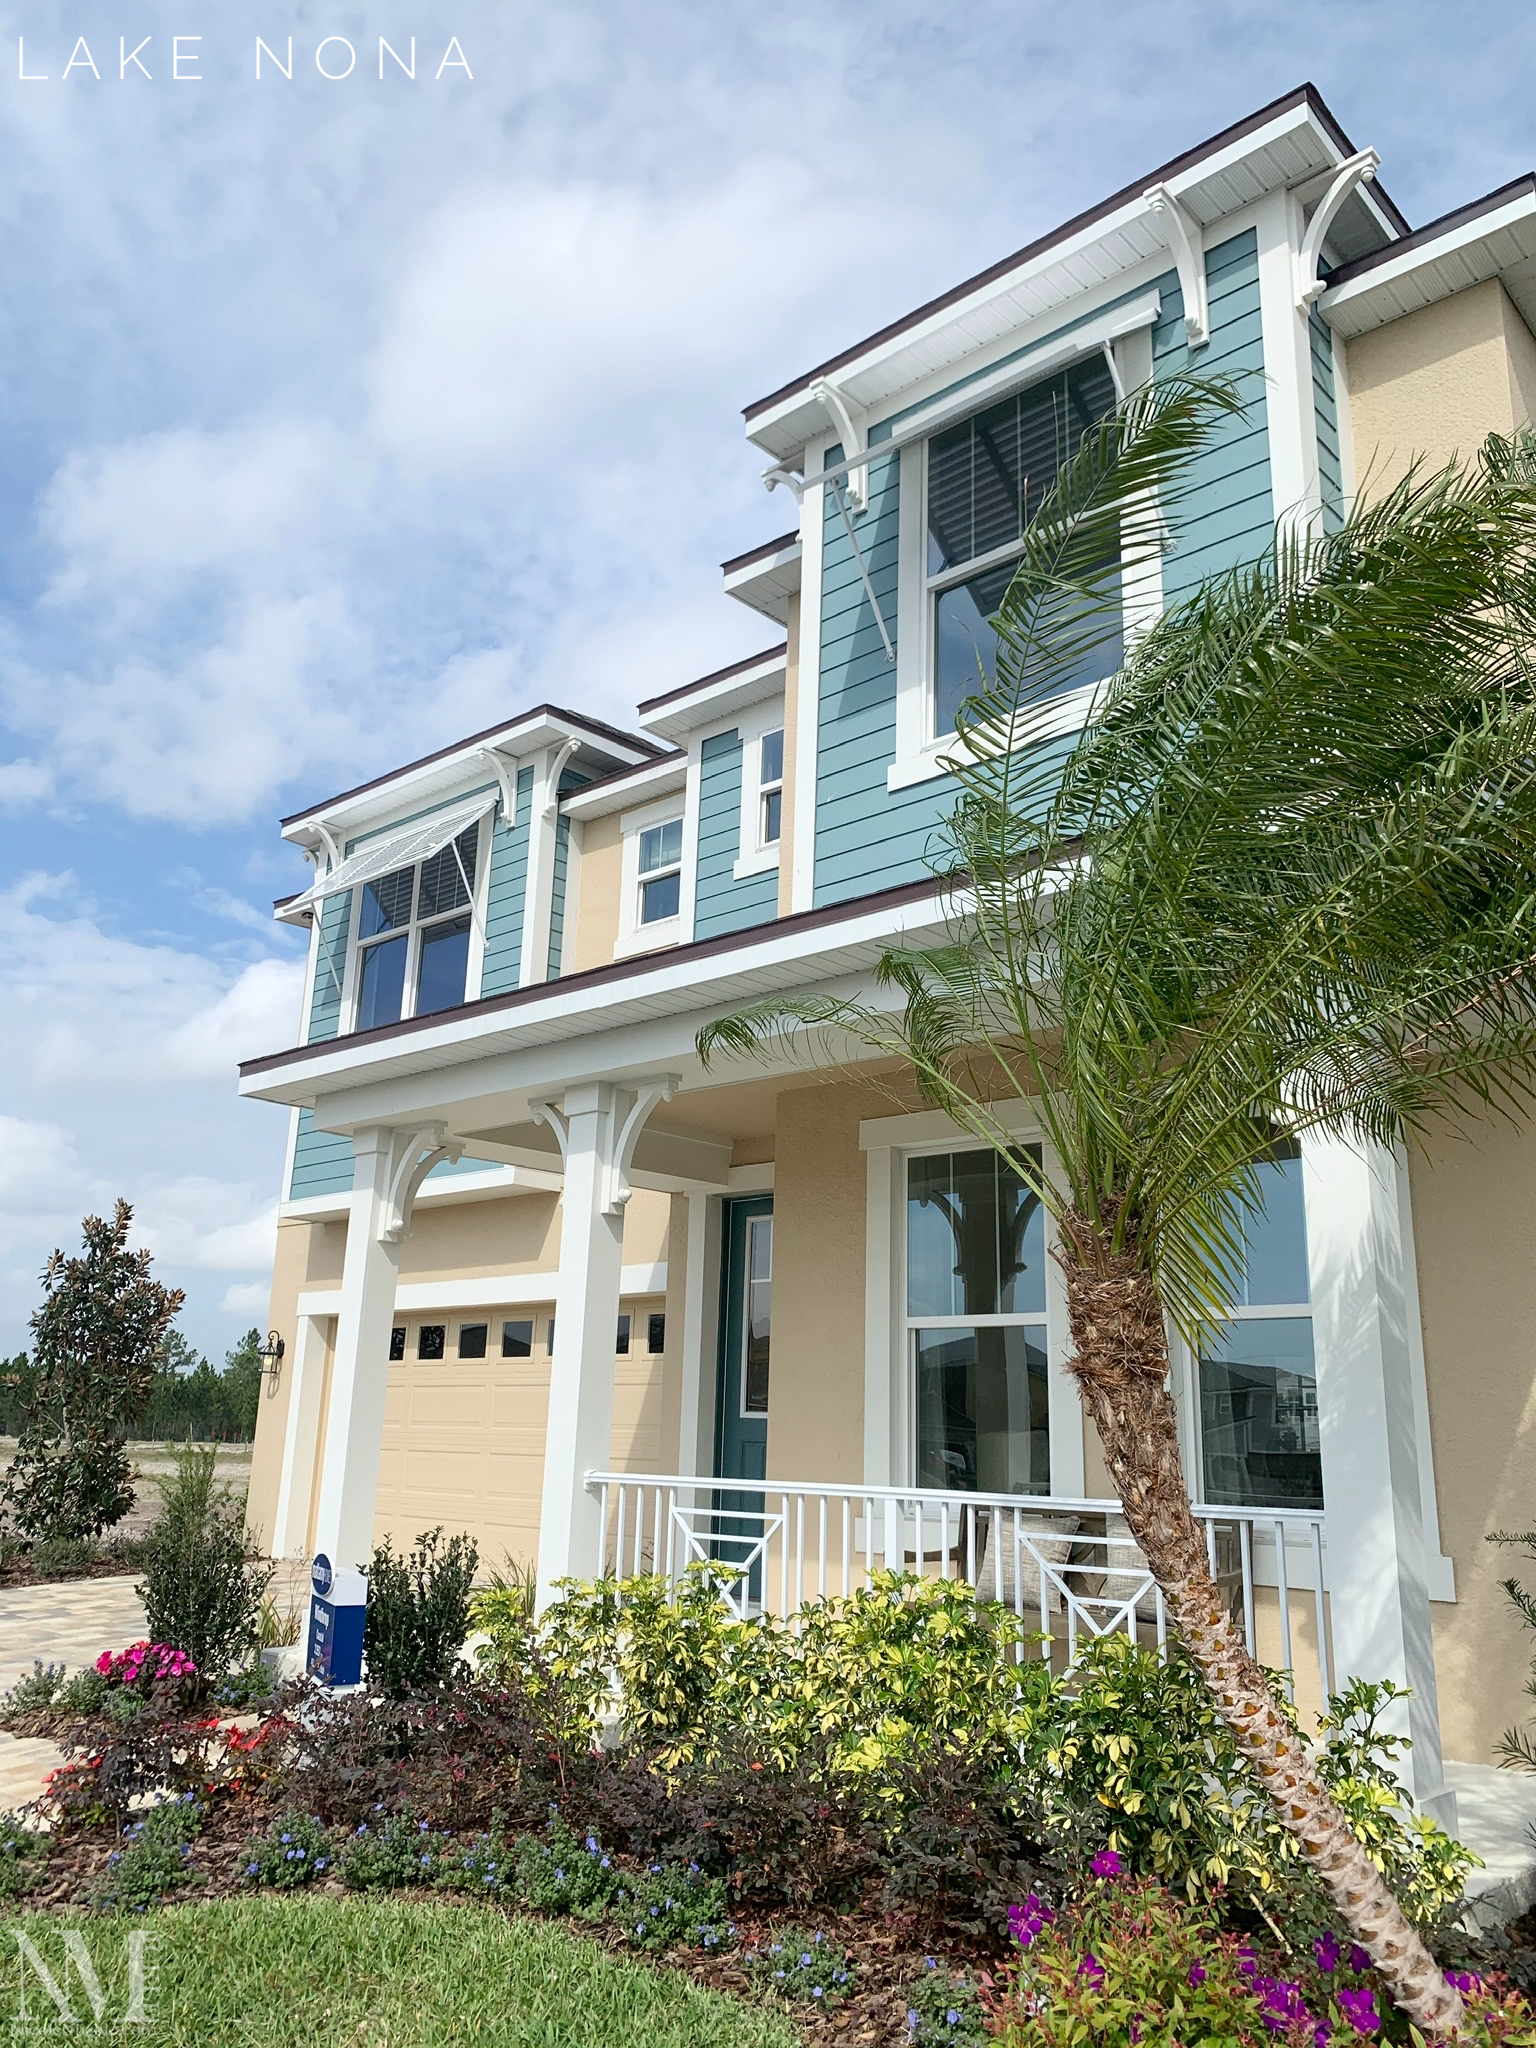 Coastal exterior architectural design located in Orlando, FL .  For more builders and options for your new home.  Please visit my website for more details.